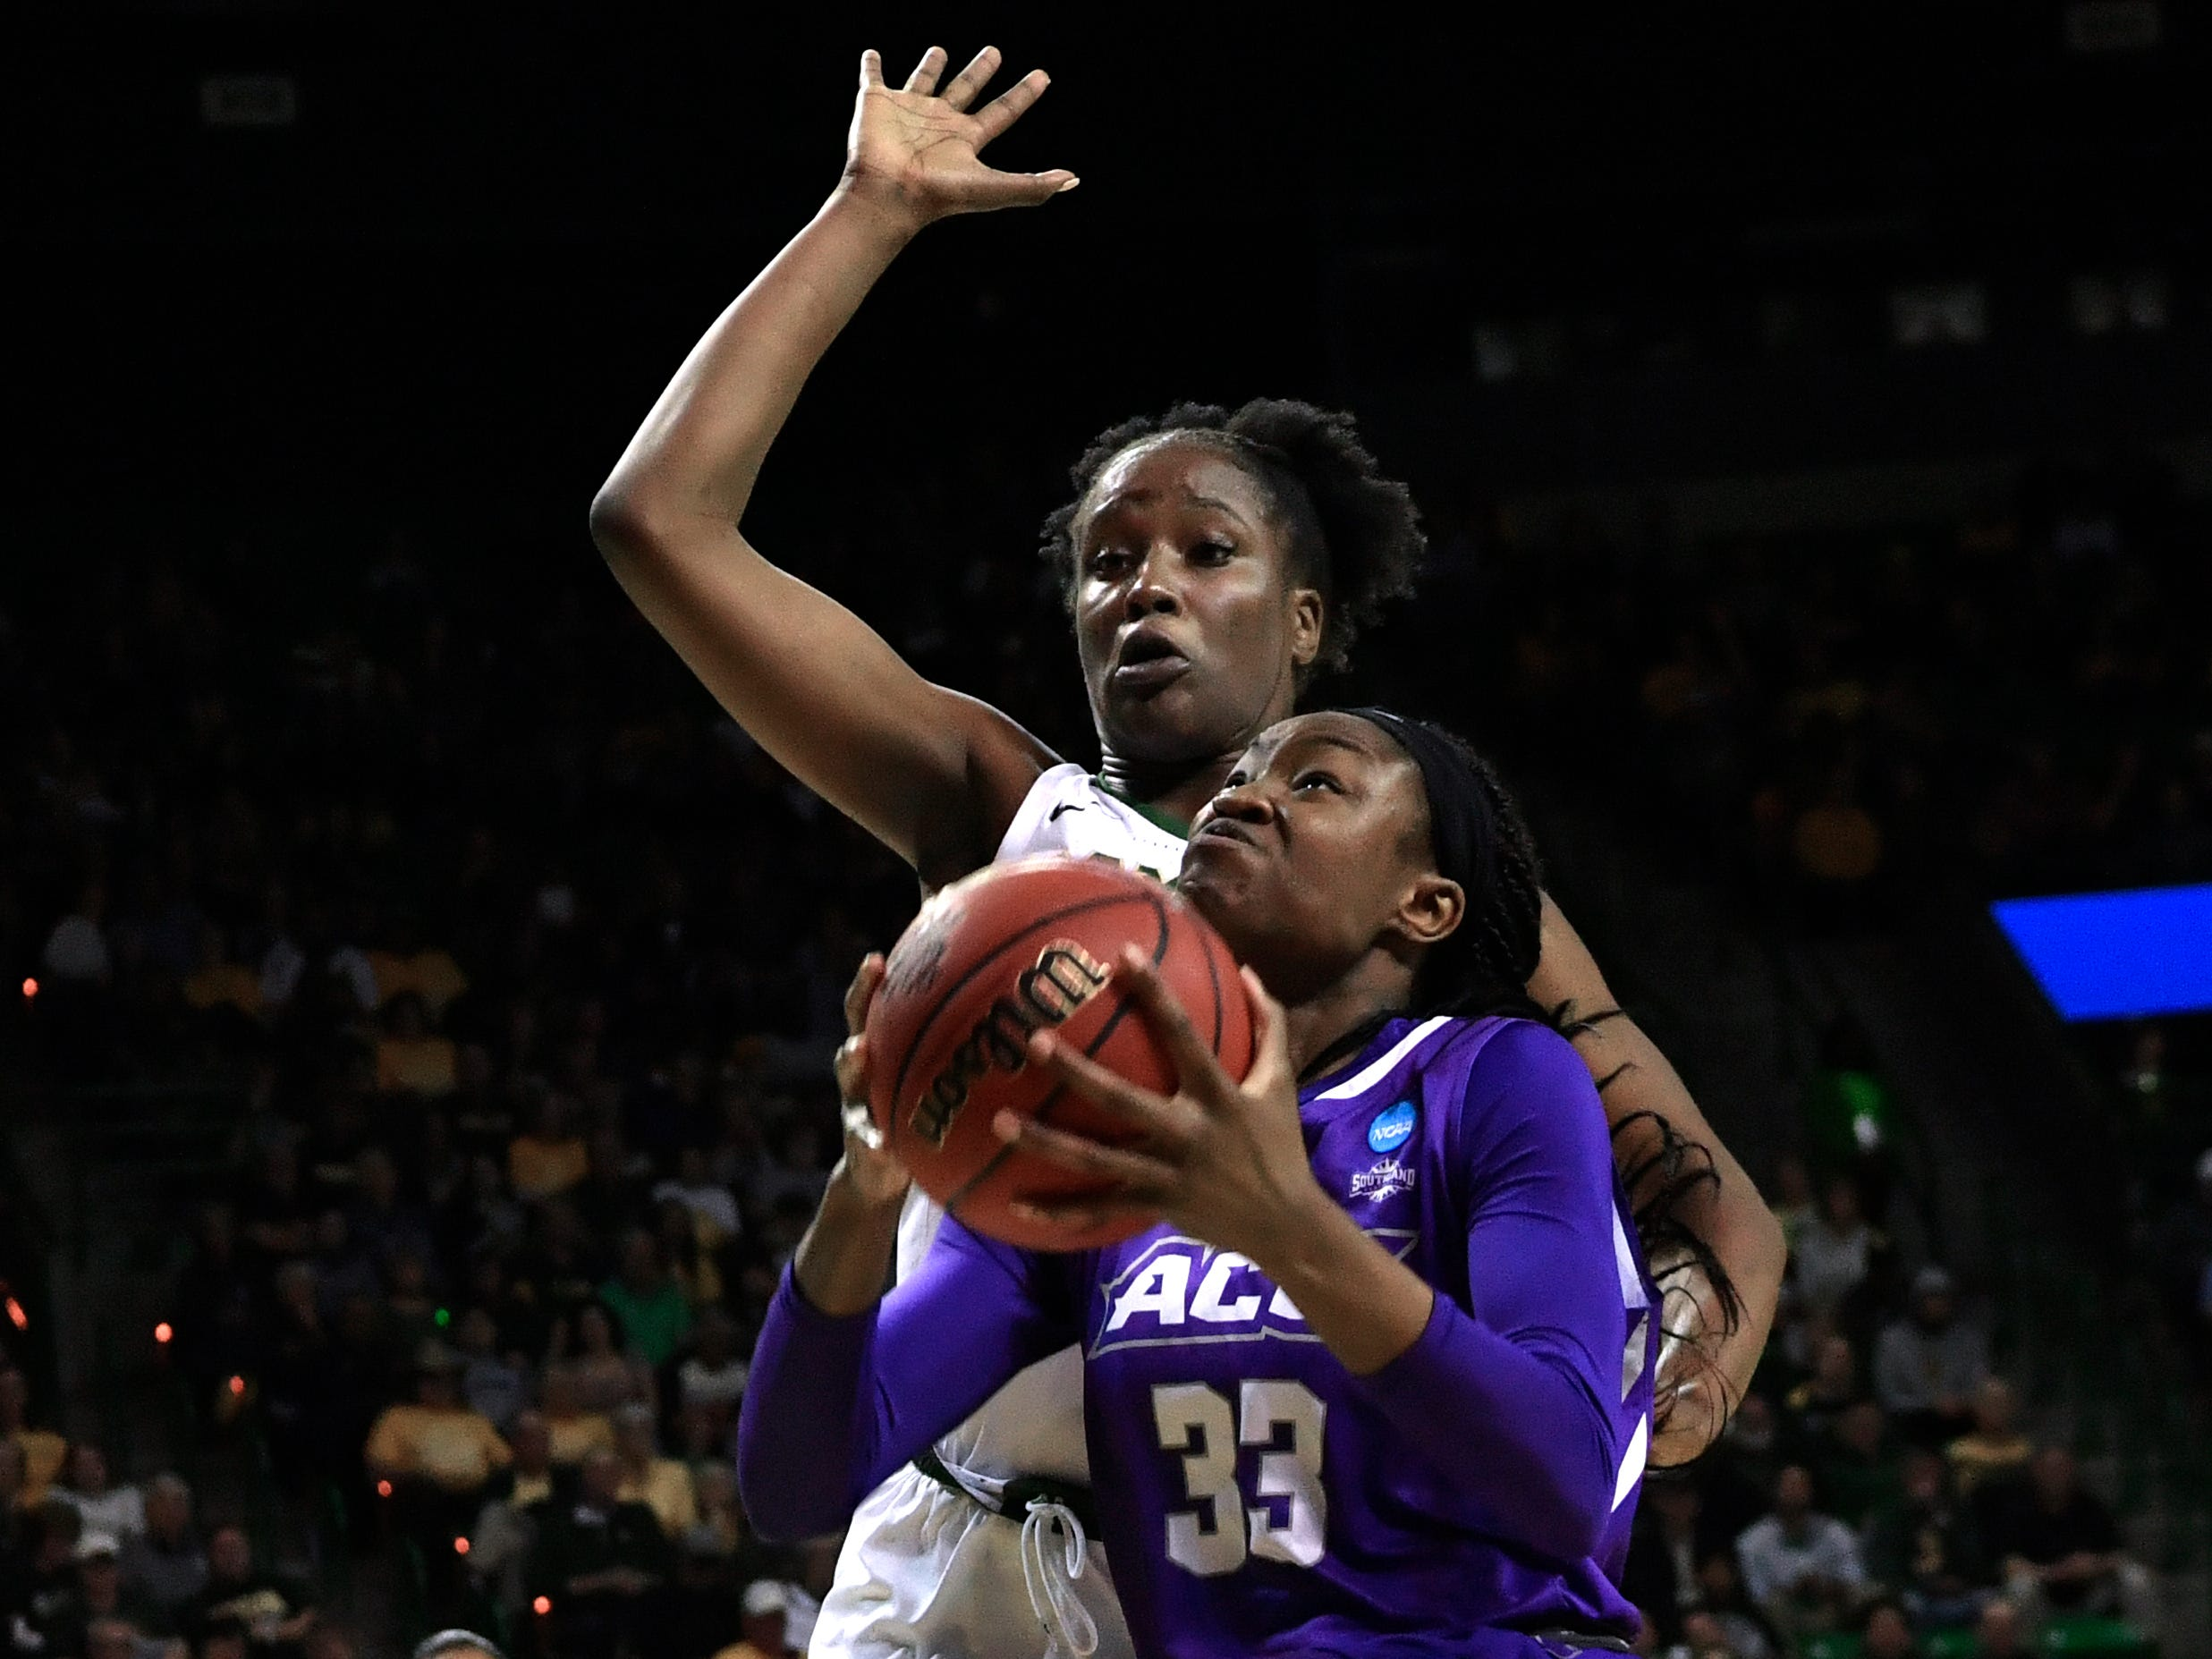 ACU's Alyssa Adams tries for a basket against Baylor's Queen Egbo during Saturday's NCAA Tournament women's round 1 basketball game March 23, 2019. Baylor defeated Abilene Christian University, 95-38.